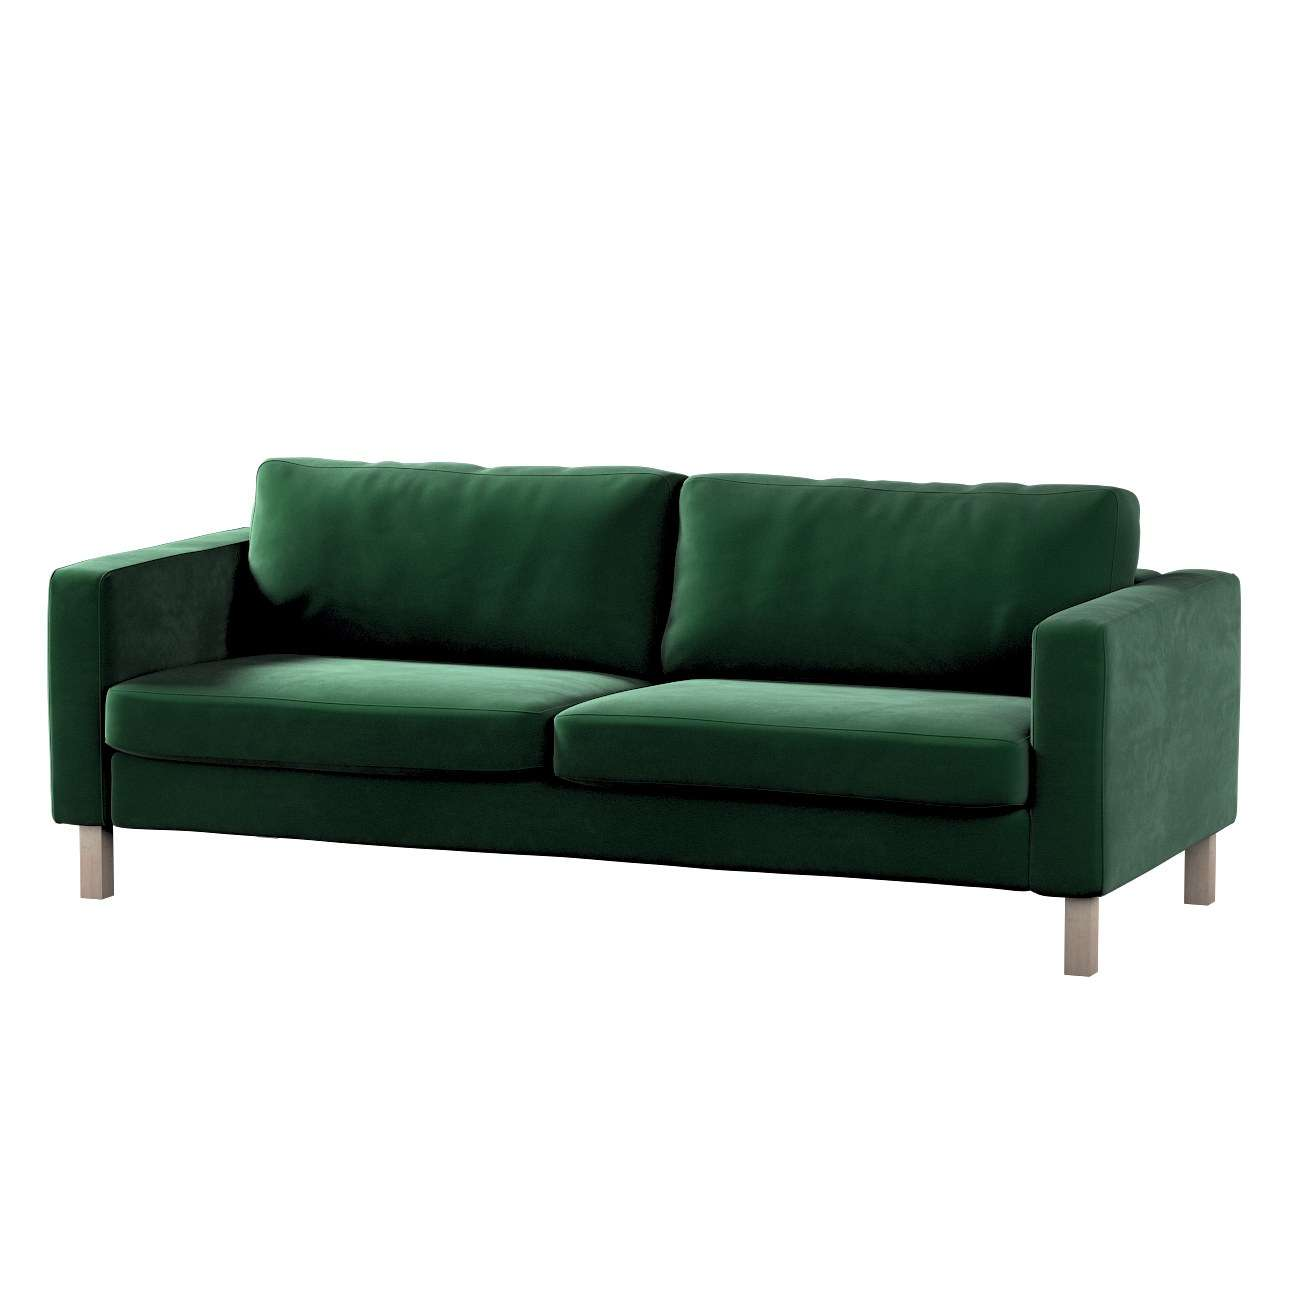 Super Karlstad 3 Seater Sofa Cover Gmtry Best Dining Table And Chair Ideas Images Gmtryco